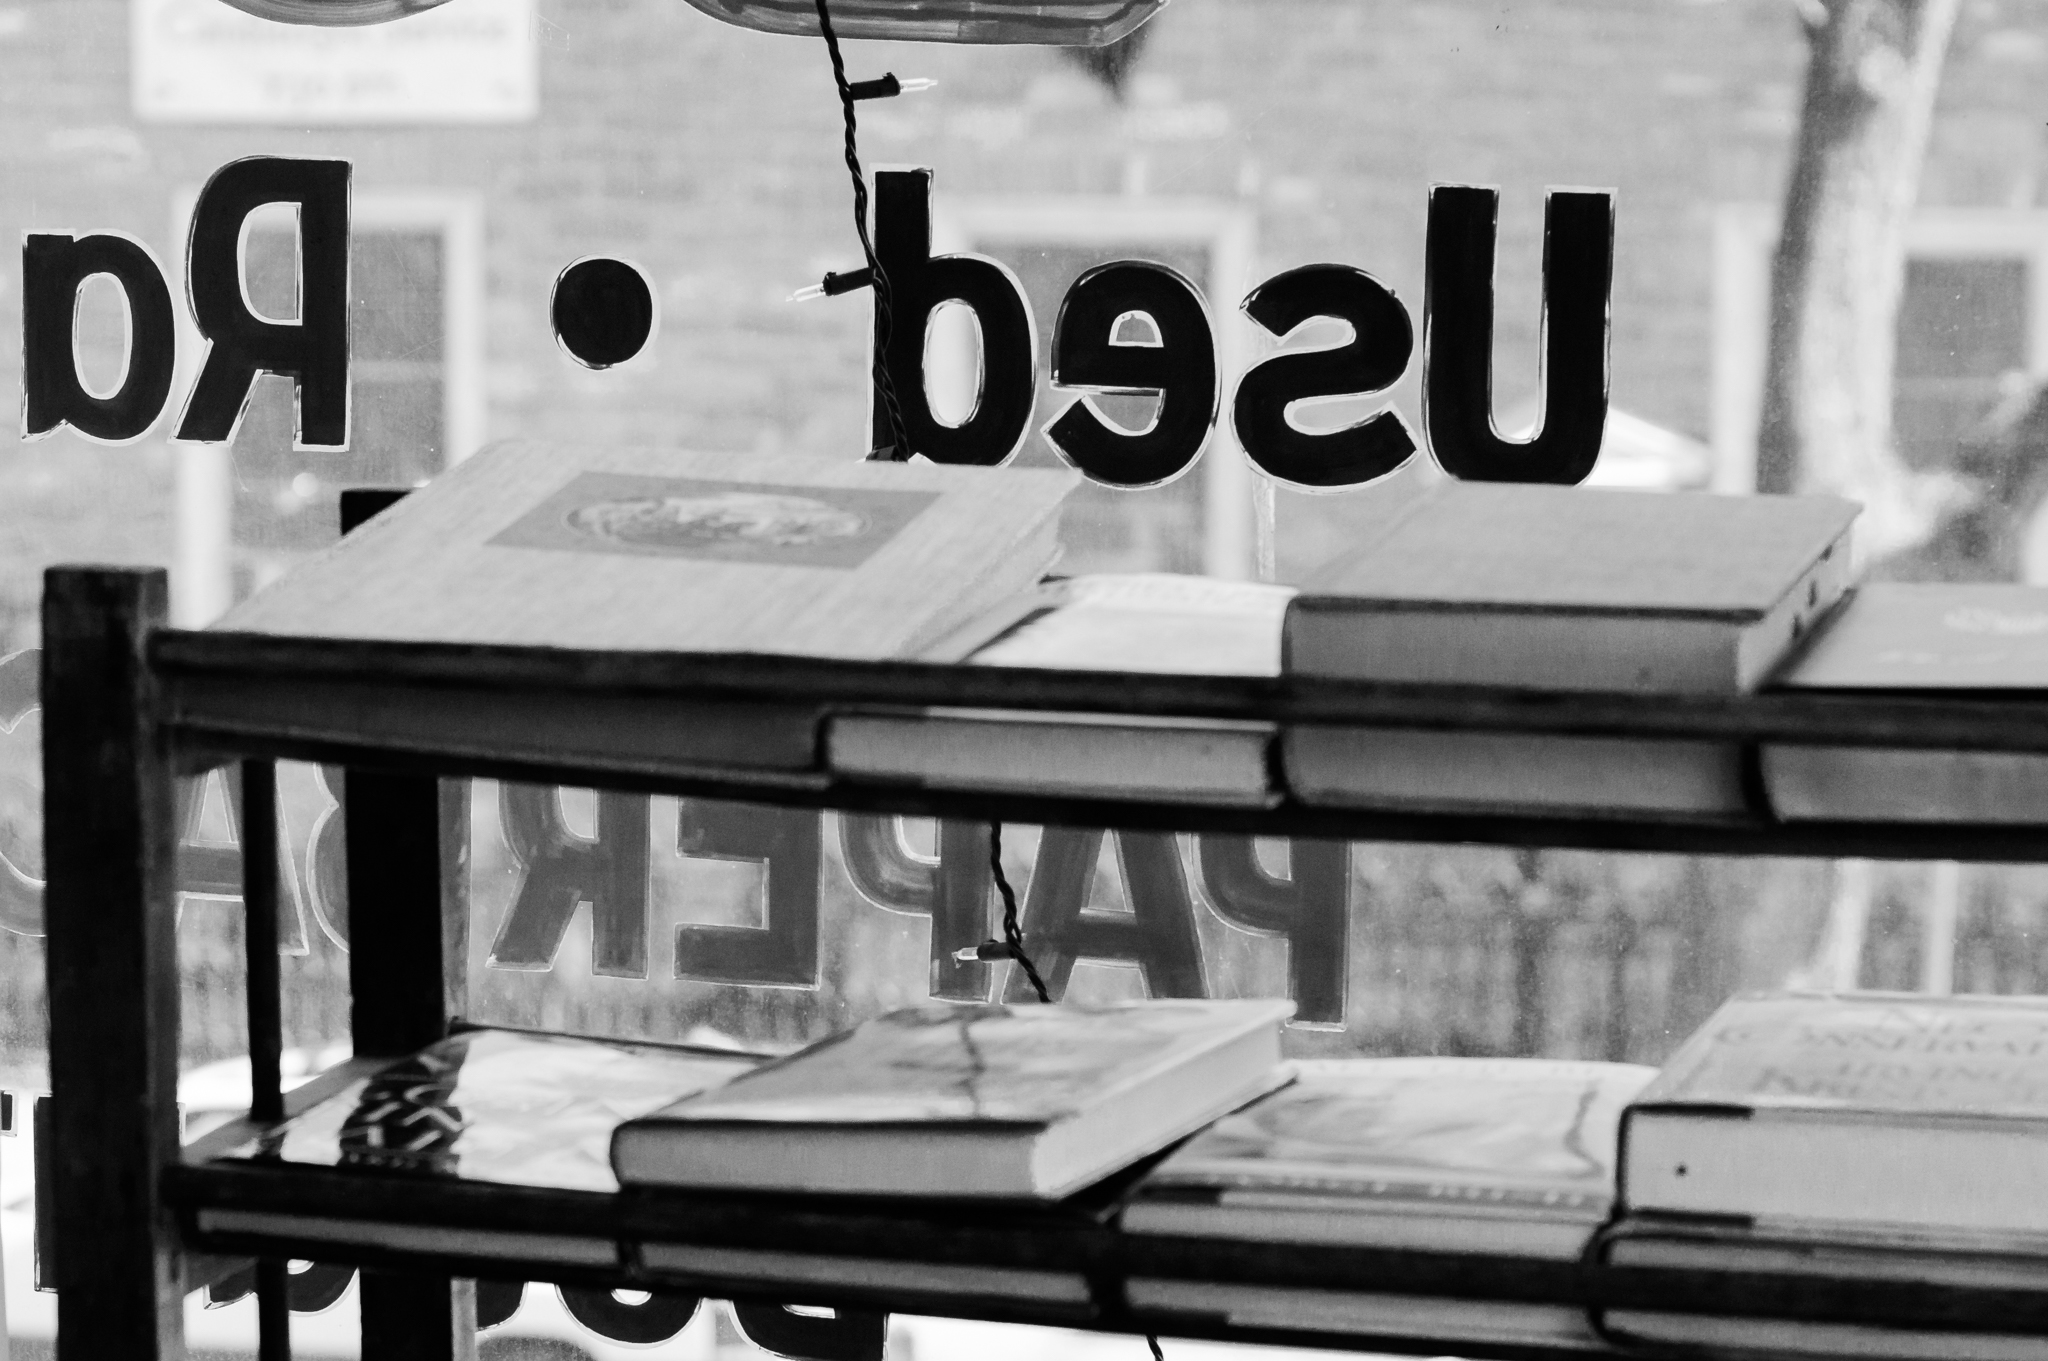 This was taken in one of my favorite bookstores, Easton, Pennsylvania's  Quadrant . Great breakfasts and rooms upon rooms of used books to explore. It's also from the first few months of my journey as a photographer, with (I believe) my old Nex-5T camera and an old Canon FD 50mm lens.